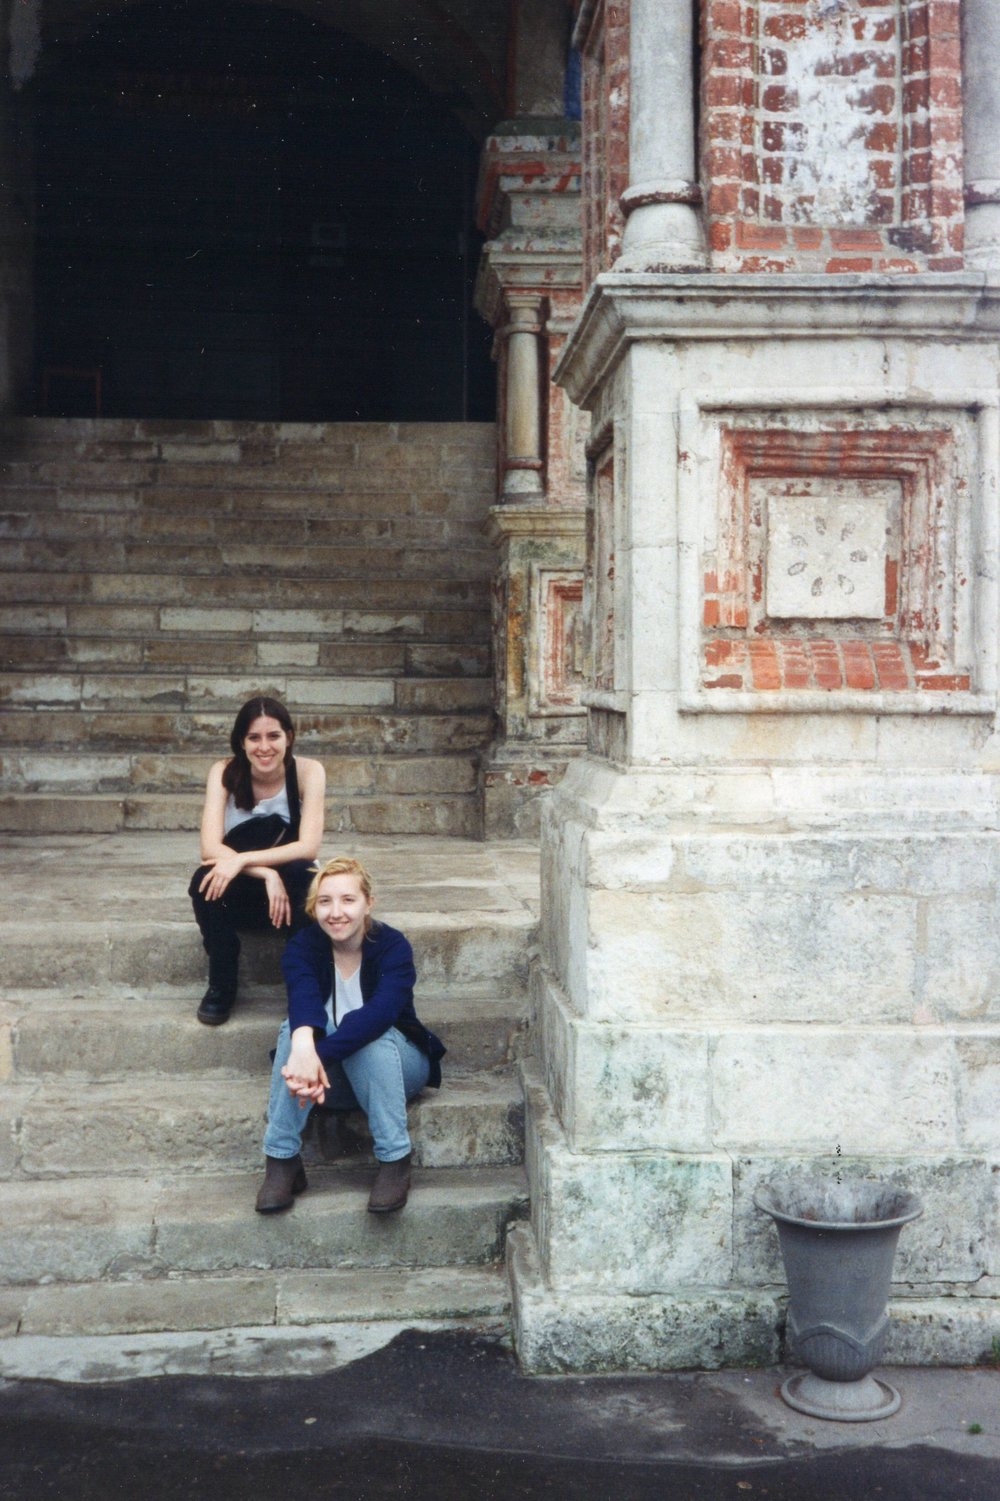 And lastly, a photo with people! Me and a friend exploring the streets of Russia. Photo courtesy of a dear friend, Elena Holeton Piller (not pictured), with whom a wonderful friendship has stretched over the past two decades since beginning in St. Petersburg that summer of 1996.